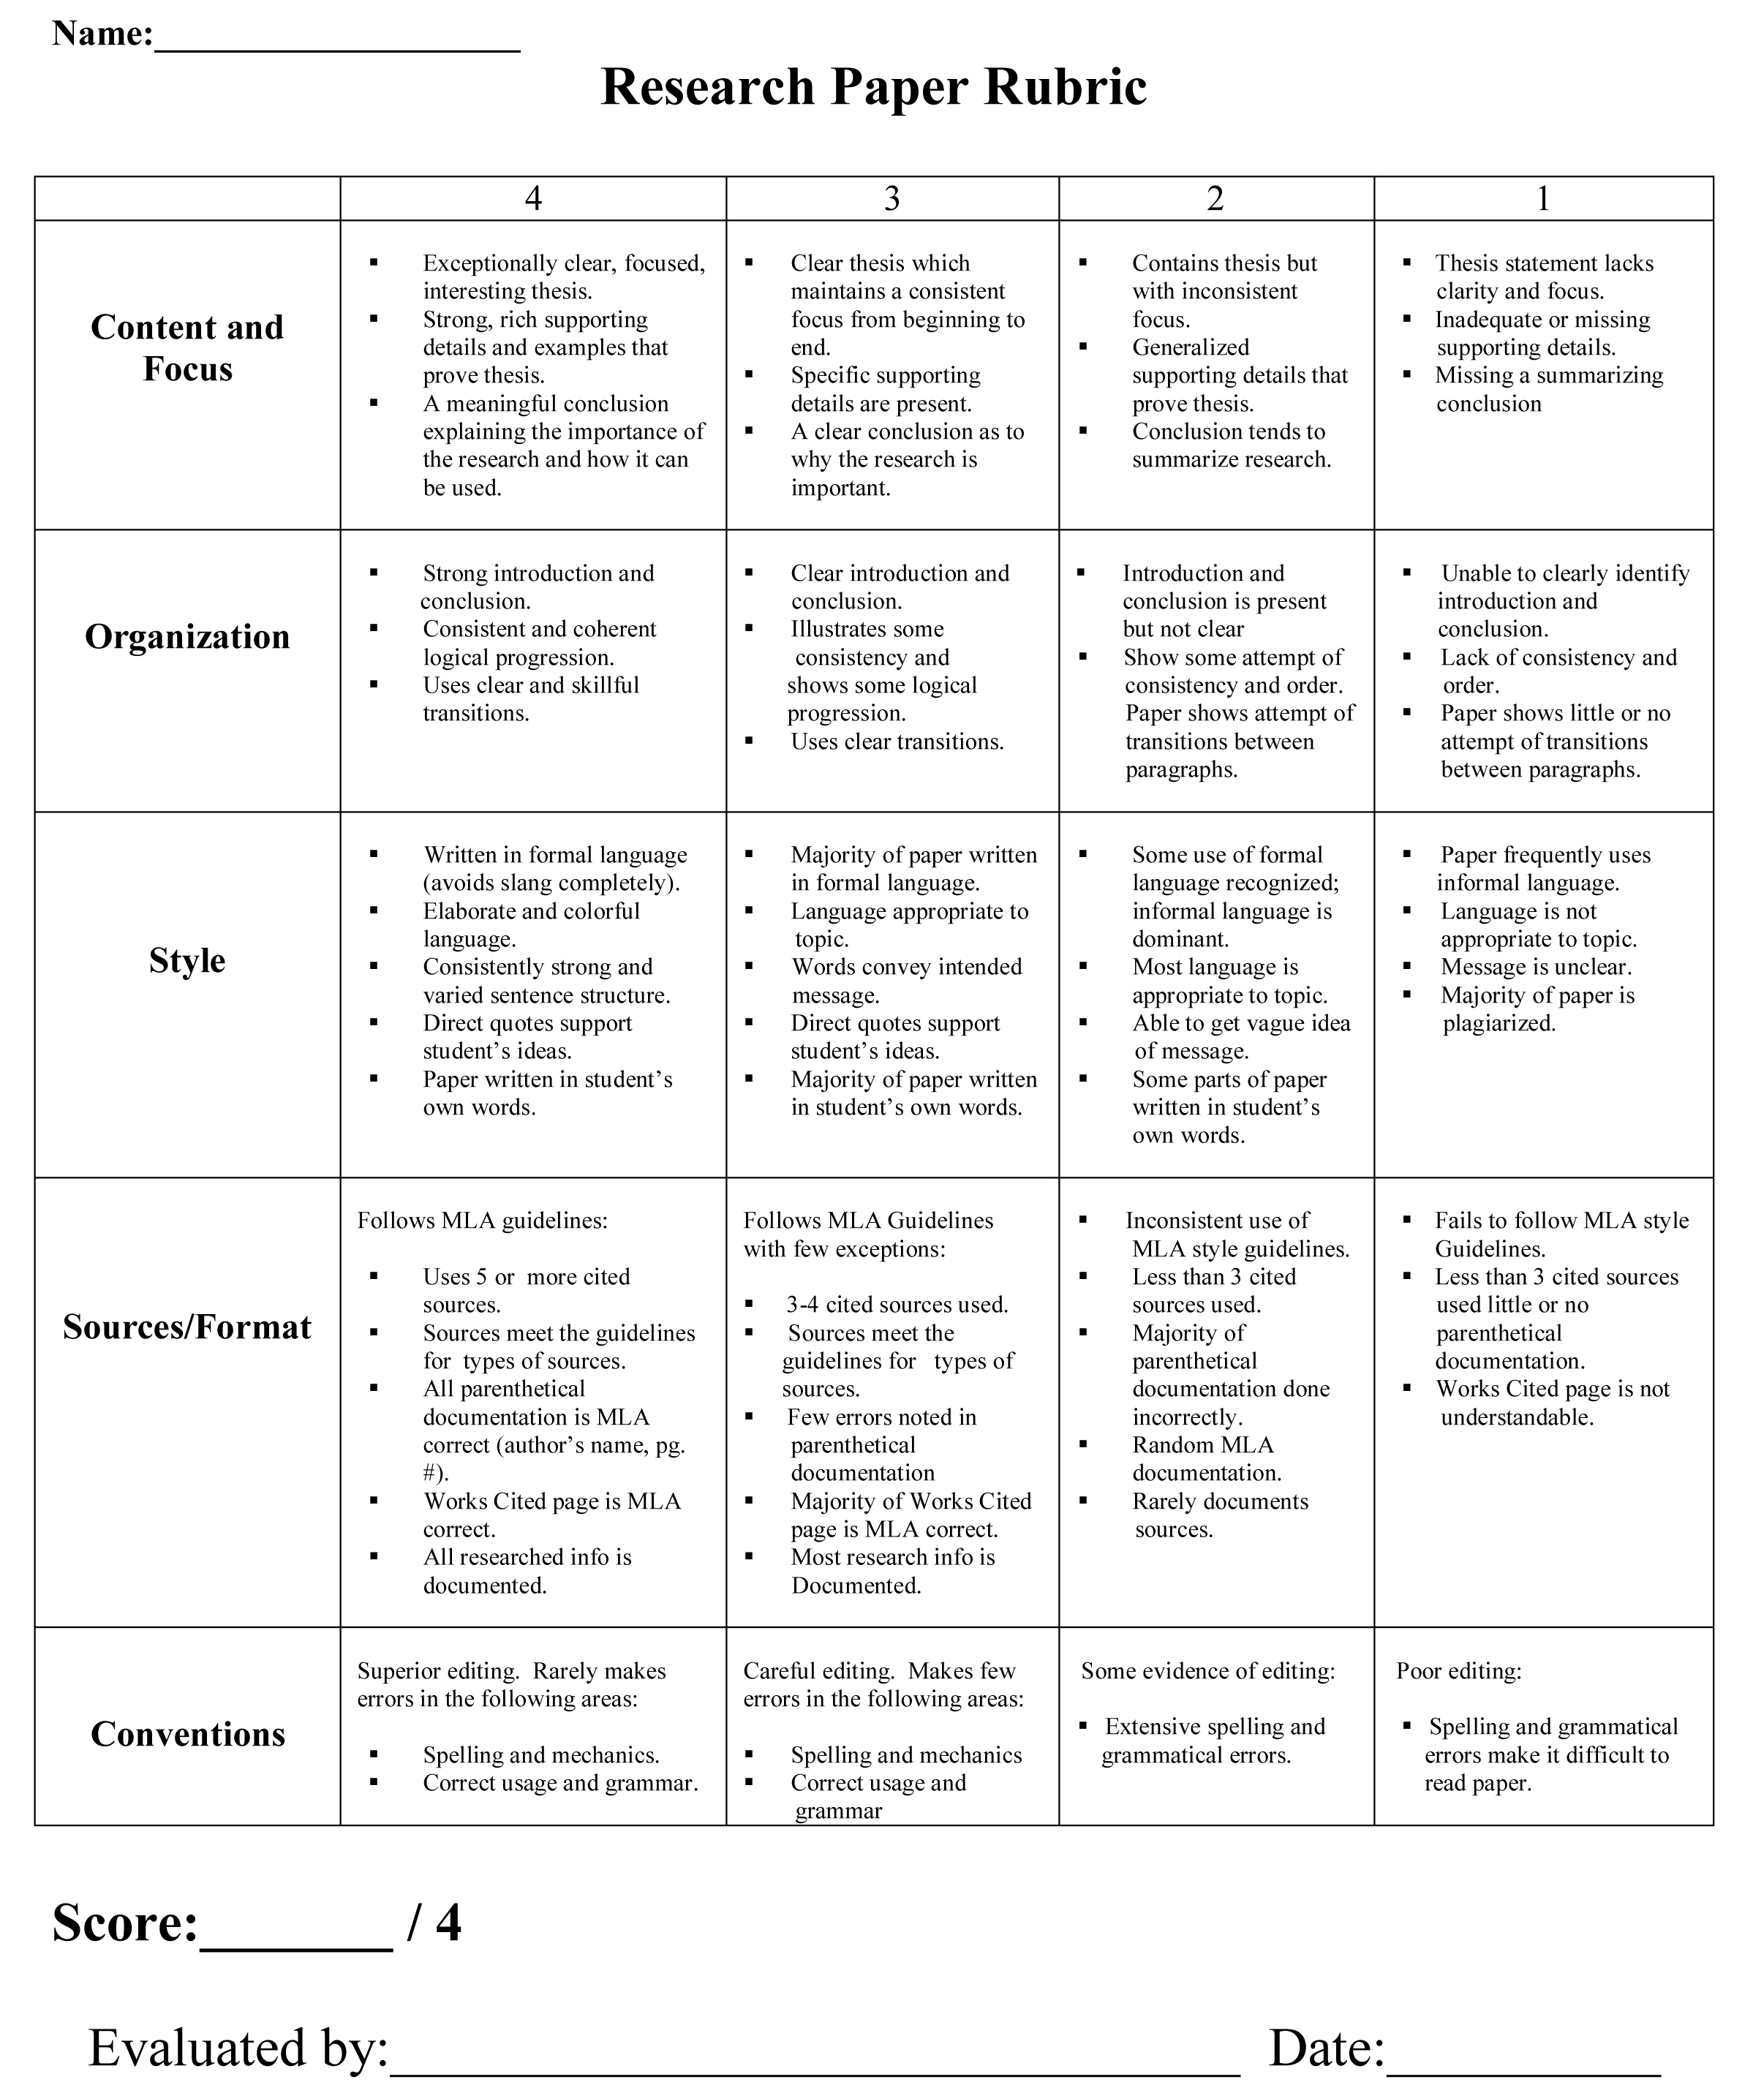 012 Research Paper Rubric Free Sample Online Stunning Writer Full